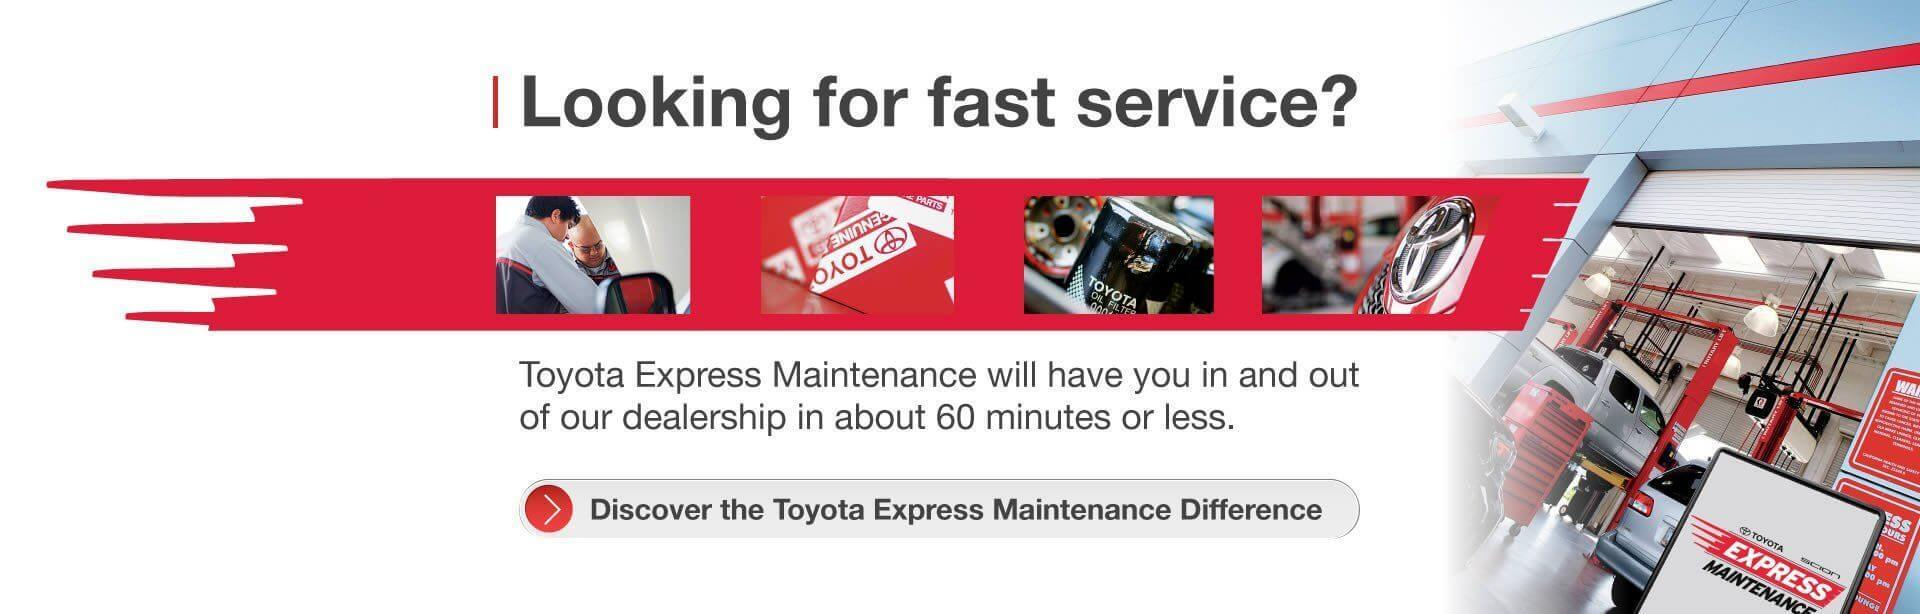 Toyota Express Maintenance will have you in and out of our dealership in about 60 minutes or less